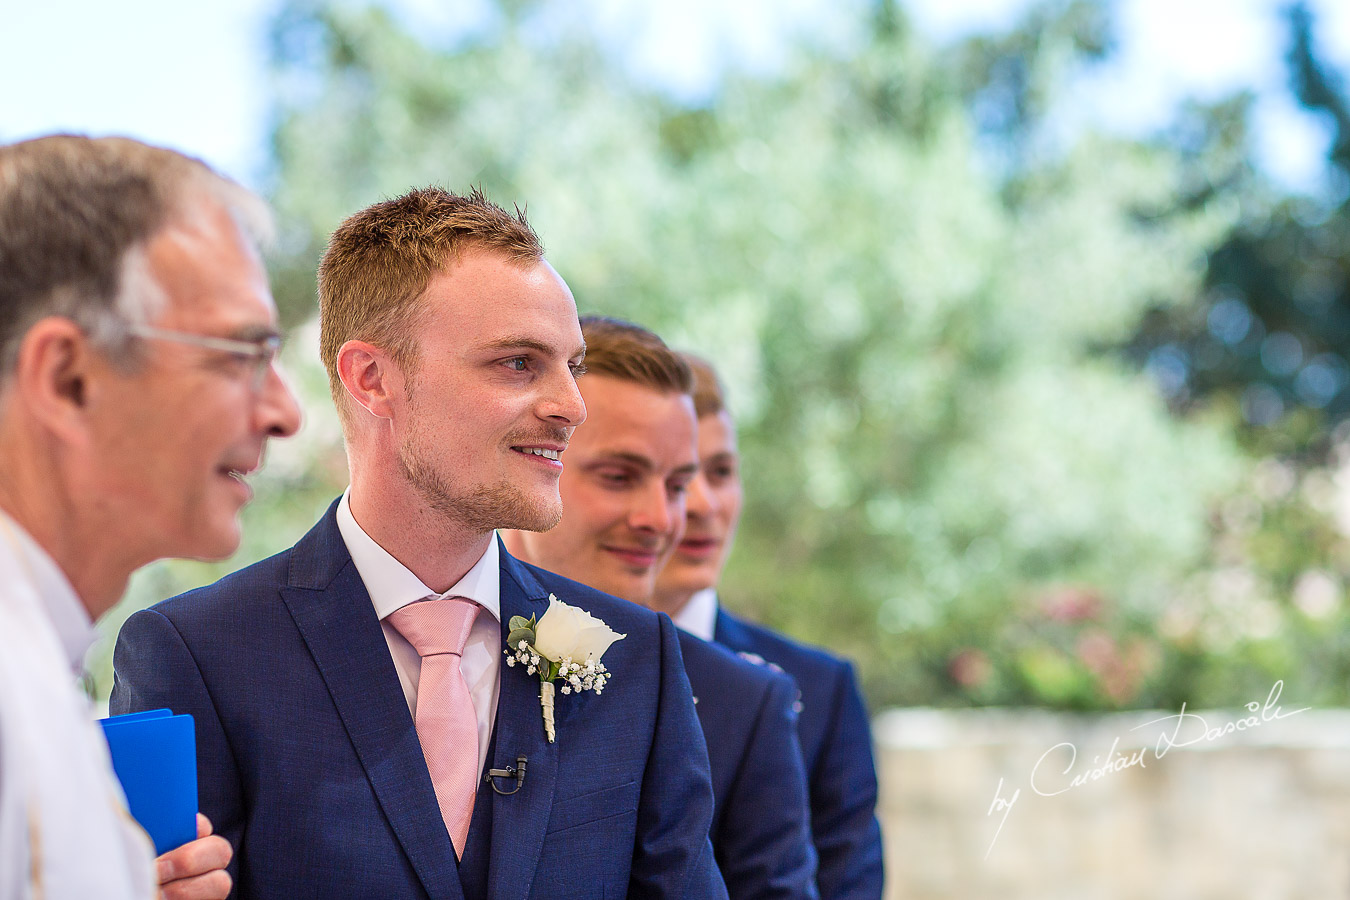 The grooms reaction when the bride arrives at the wedding ceremony at Aphrodite Hills Resort in Cyprus, captured by photographer Cristian Dascalu.